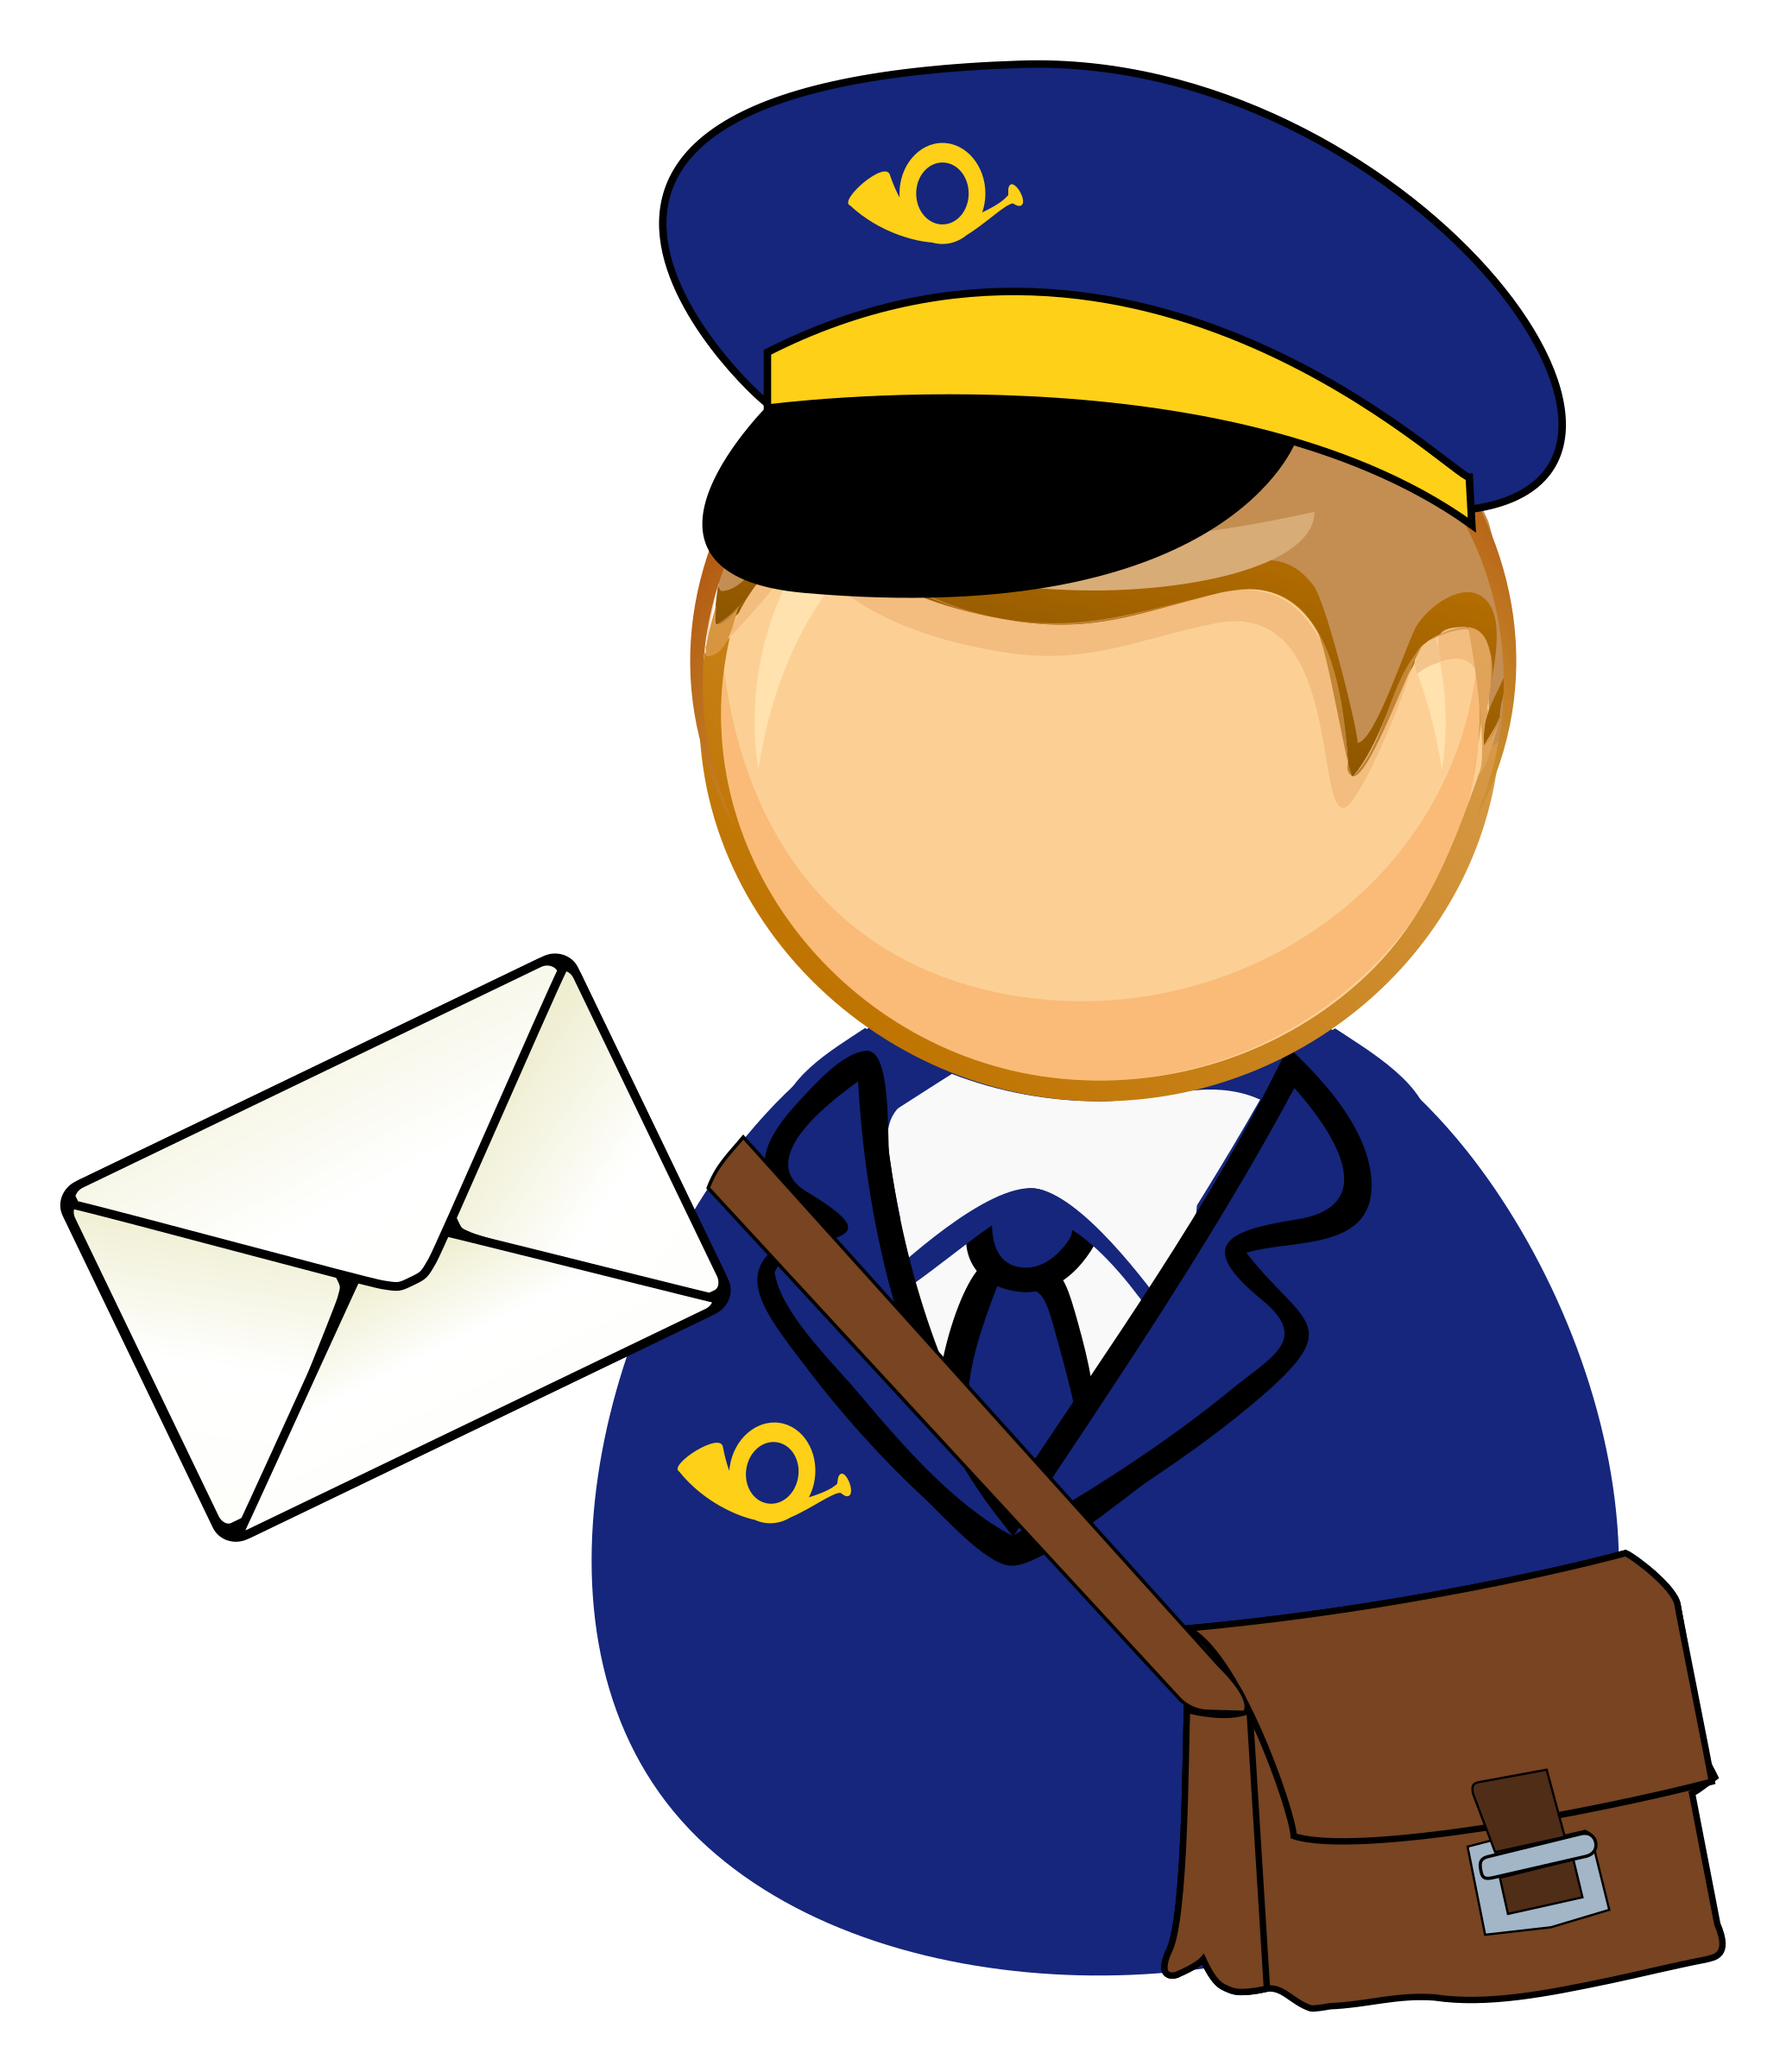 Postman clipart 2 » Clipart Station.